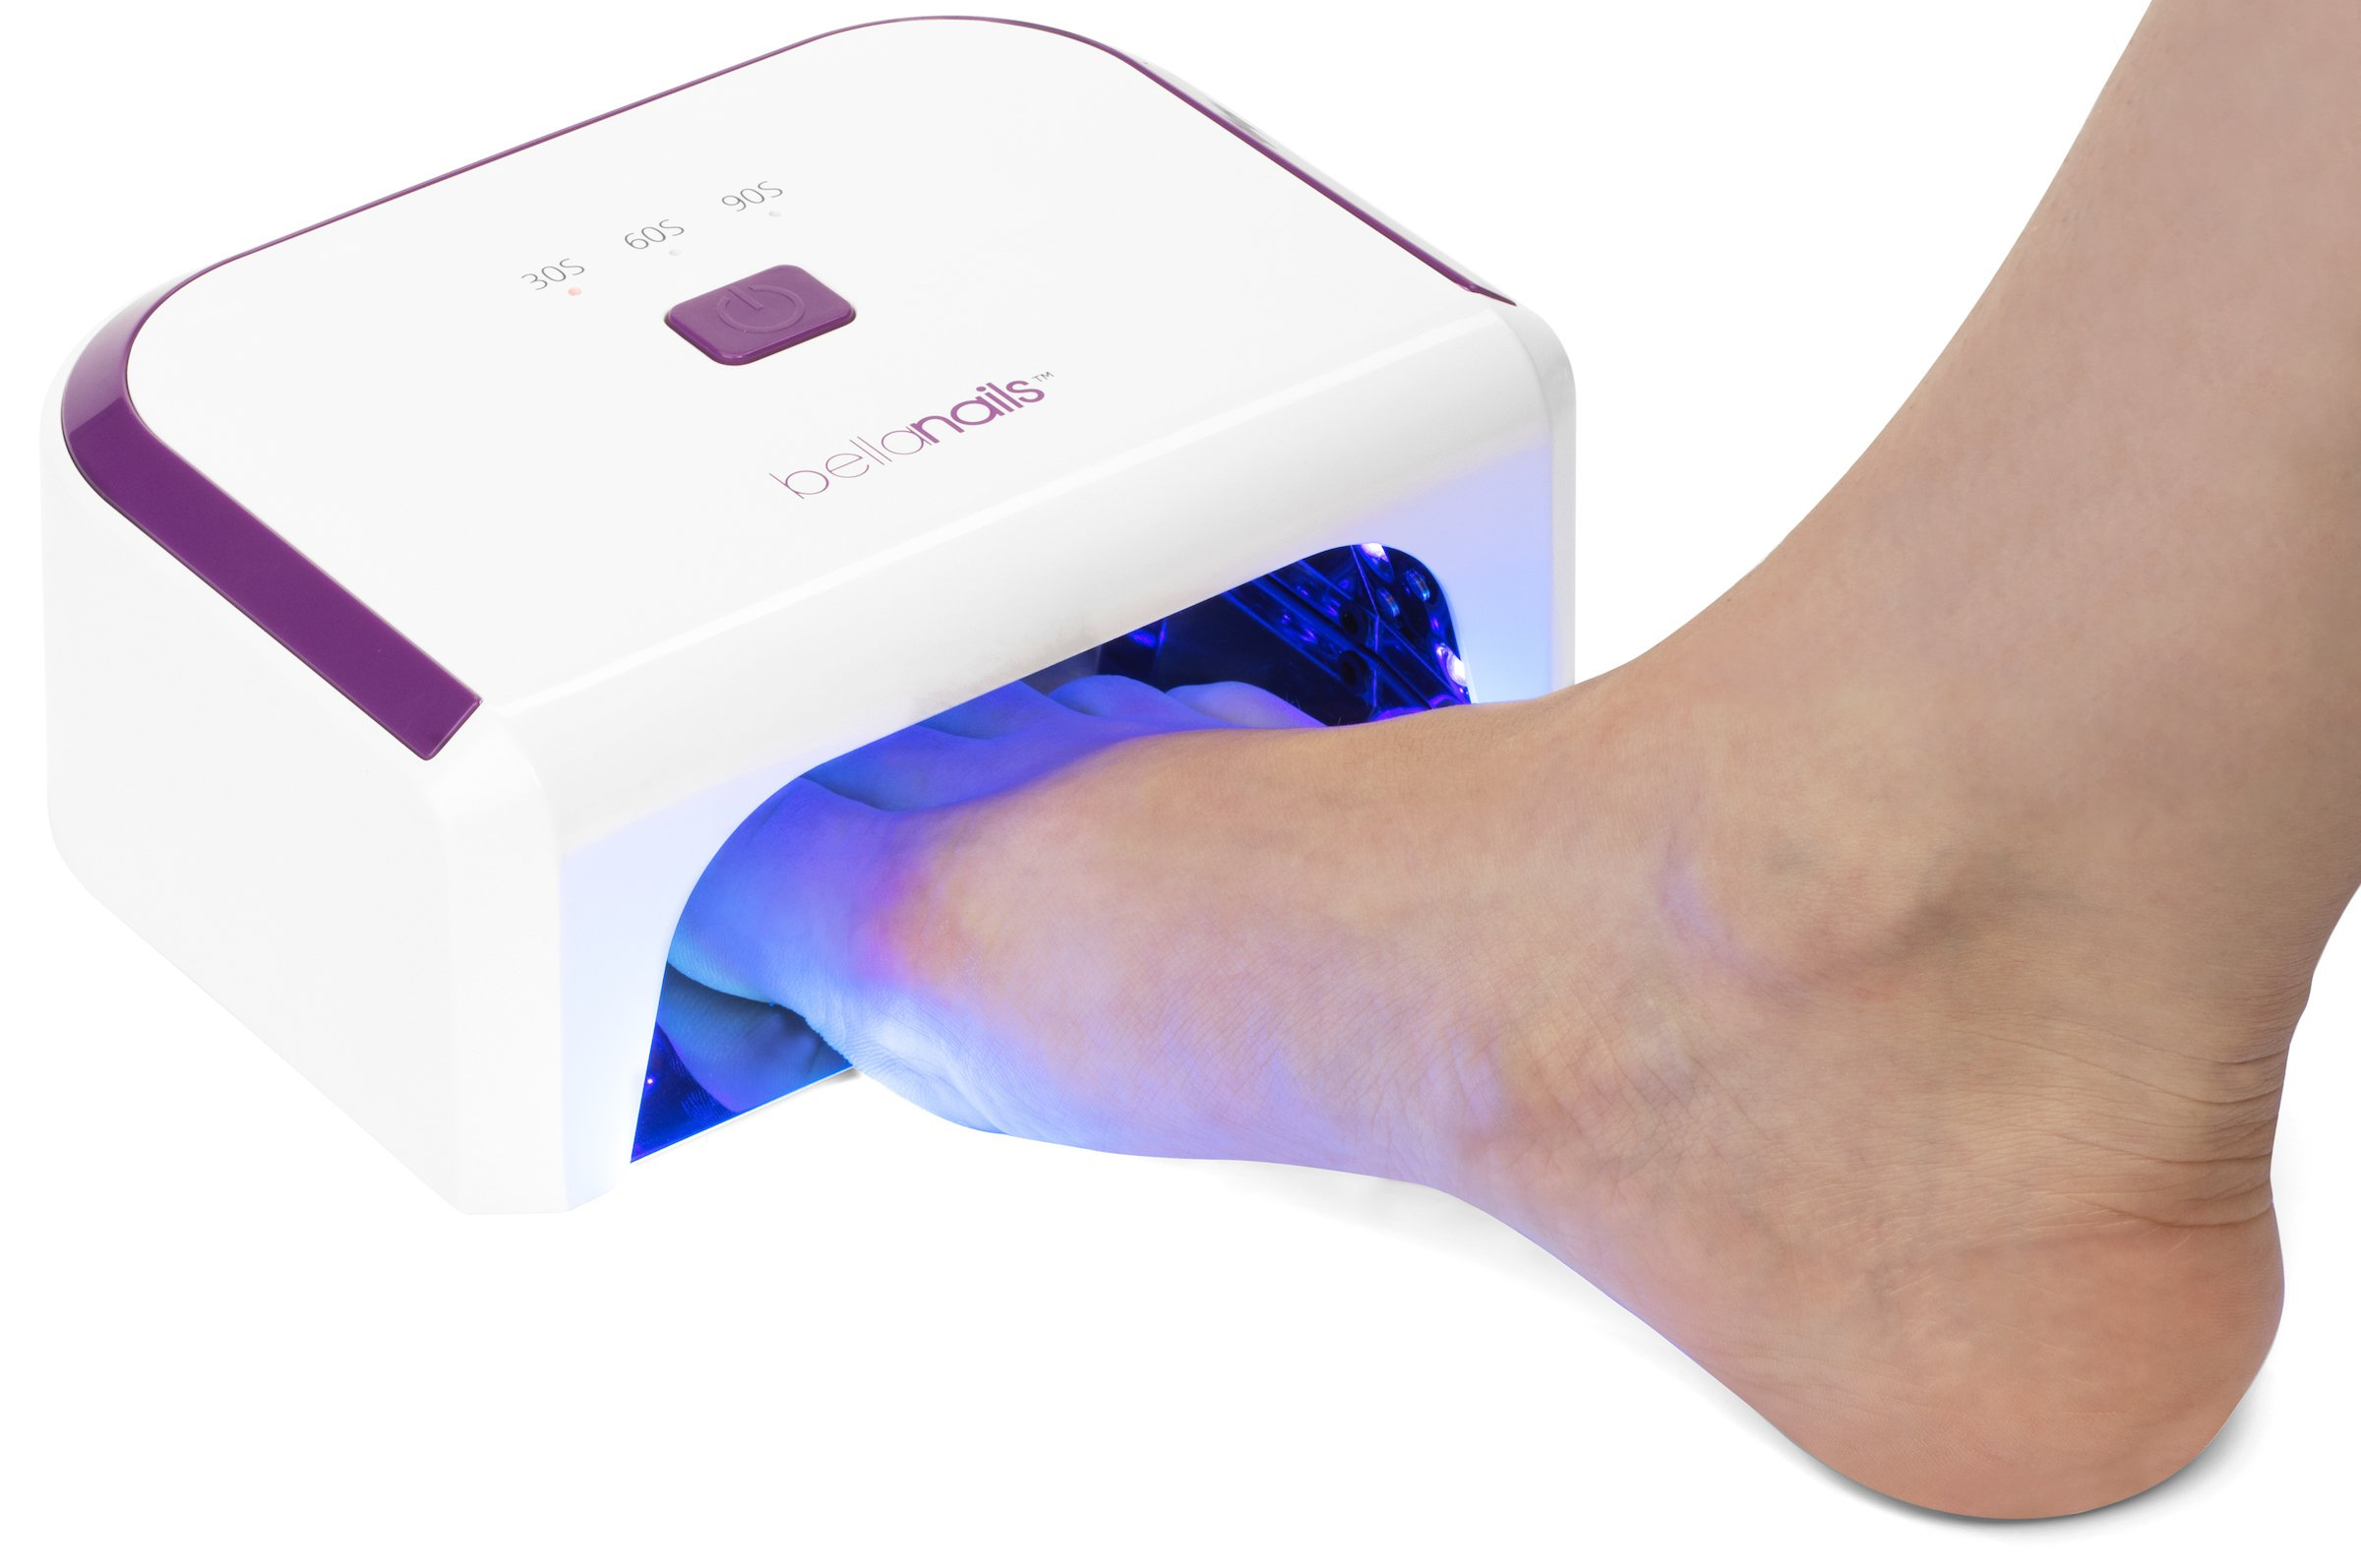 BellaNails Professional 21W LED Nail Lamp, Removable Base Tray, Auto On/Off Sensor, Works With All Gel Nail Polishes by BELLANAILS (Image #8)